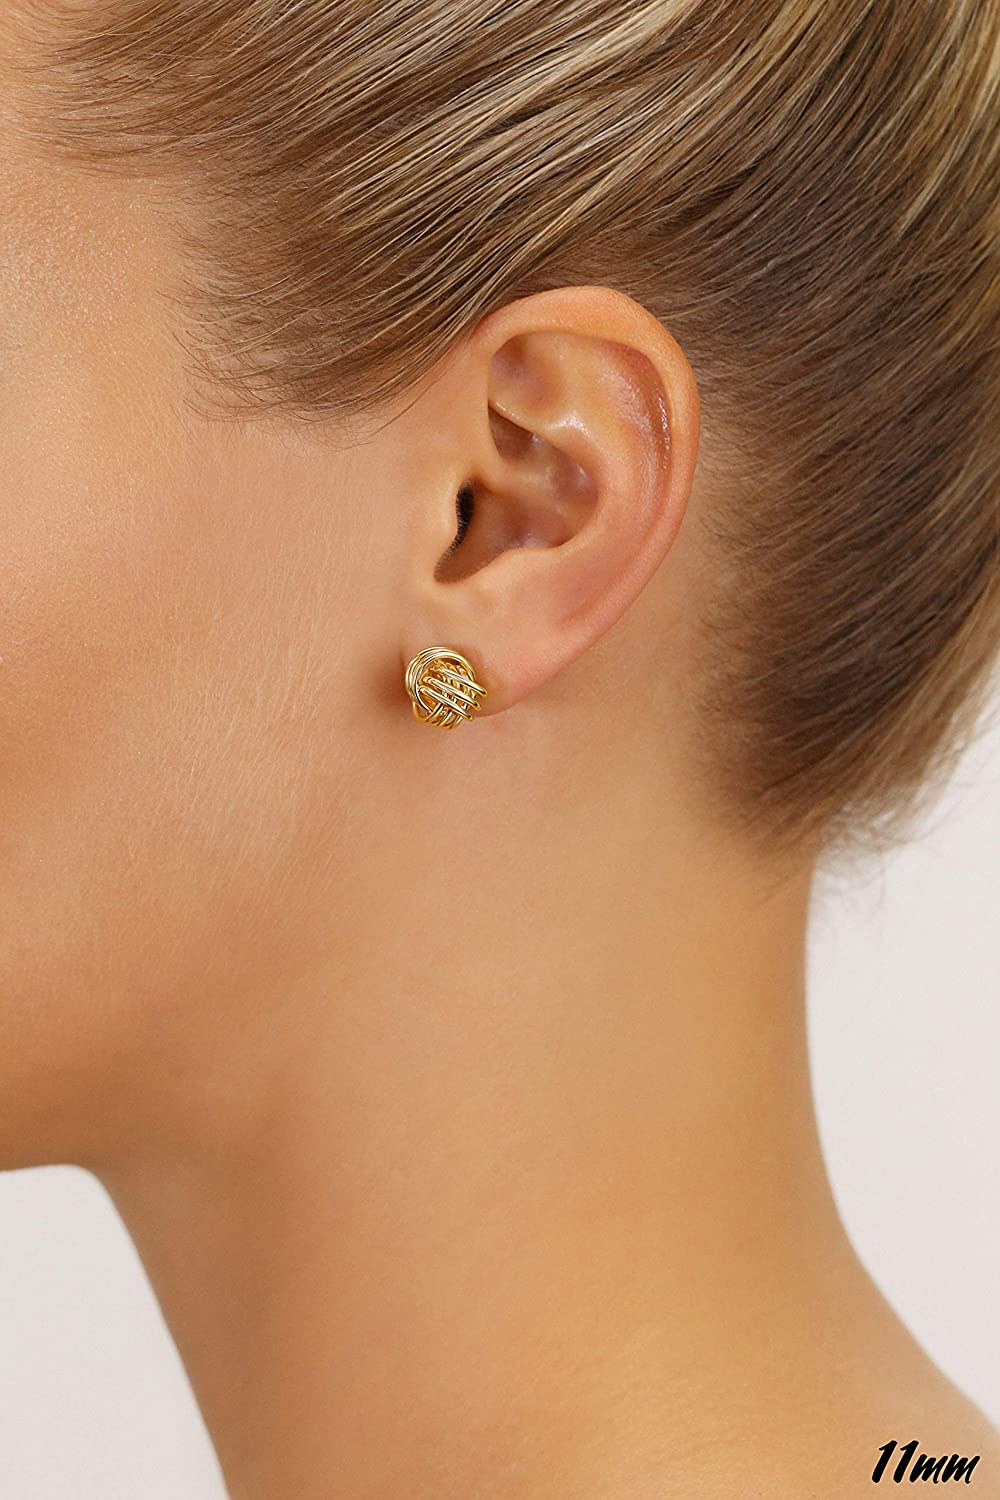 14kt Yellow Gold Lady/'s LOVE KNOT Fashion Earrings with Friction Posts for Pierced Ears.